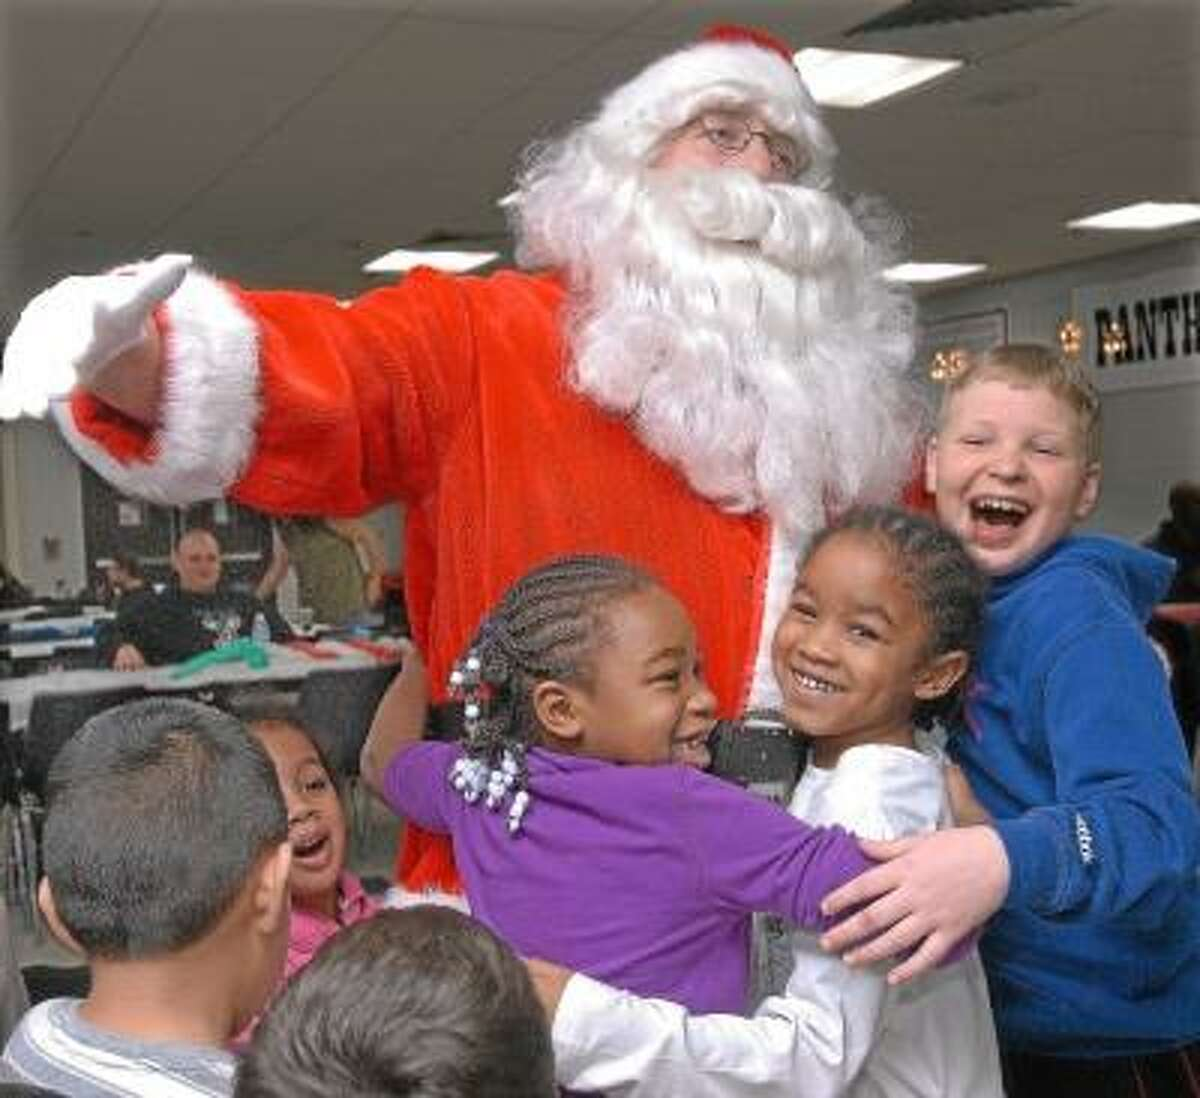 """Cromwell residents Talia Jones, 6, her twin brother Tarrell Jones and Brandon Stefurak, 11 greet Santa on his arrival at the 28th Annual Santa's Workshop hosted by Cromwell Youth Services and Cromwell High School's Student Council Monday evening in the high school cafeteria. Brandon Stefurak shouted, """"Yay, Santa is here!"""" Catherine Avalone/The Middletown Press"""